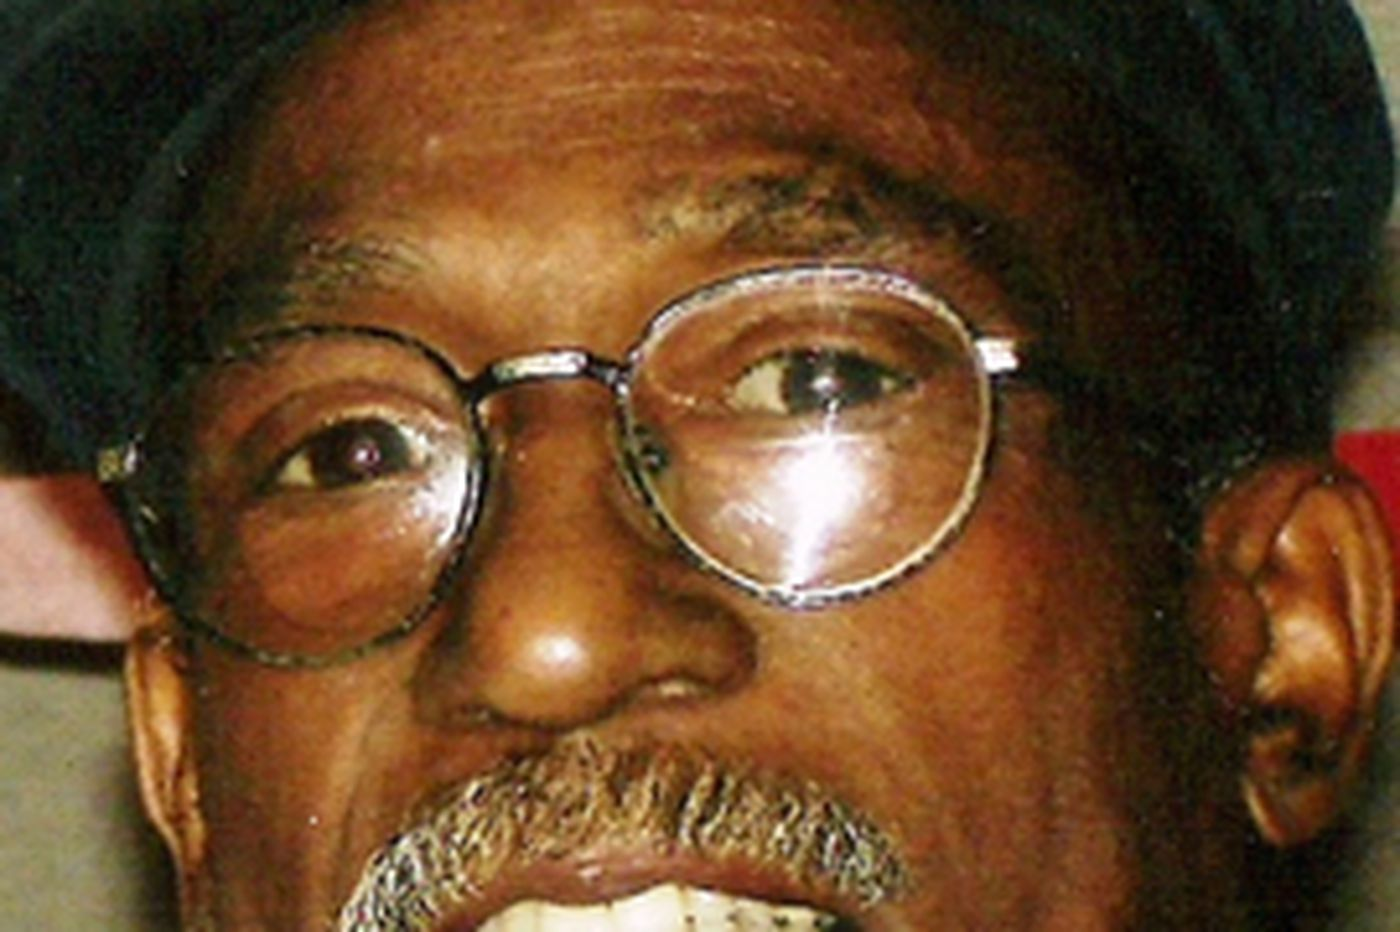 Marvin L. James, 66, union business agent